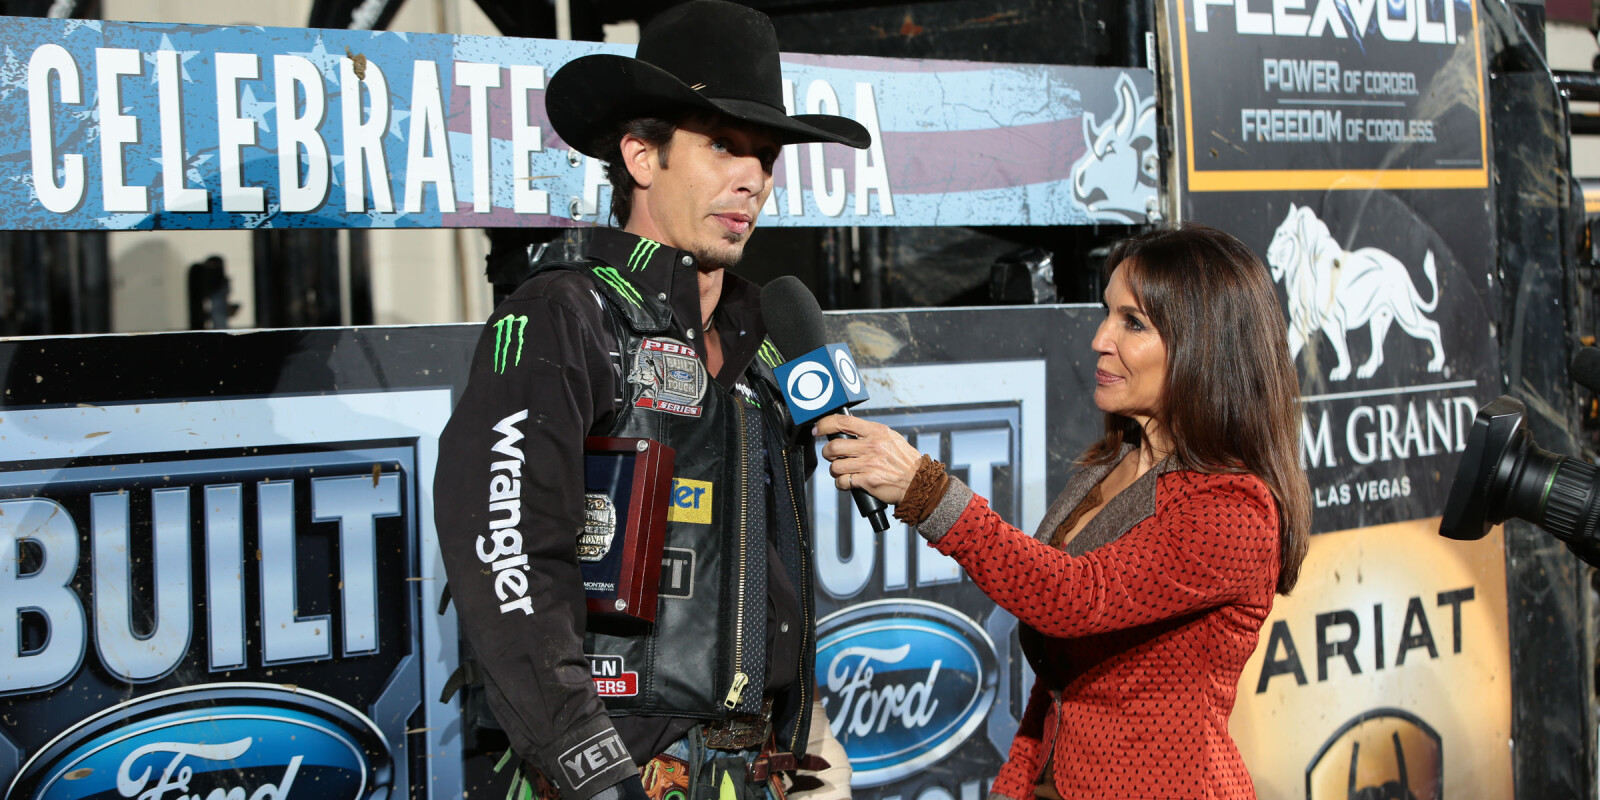 JB Mauney wins the Billings Built Ford Tough series PBR. Photo by Andy Watson